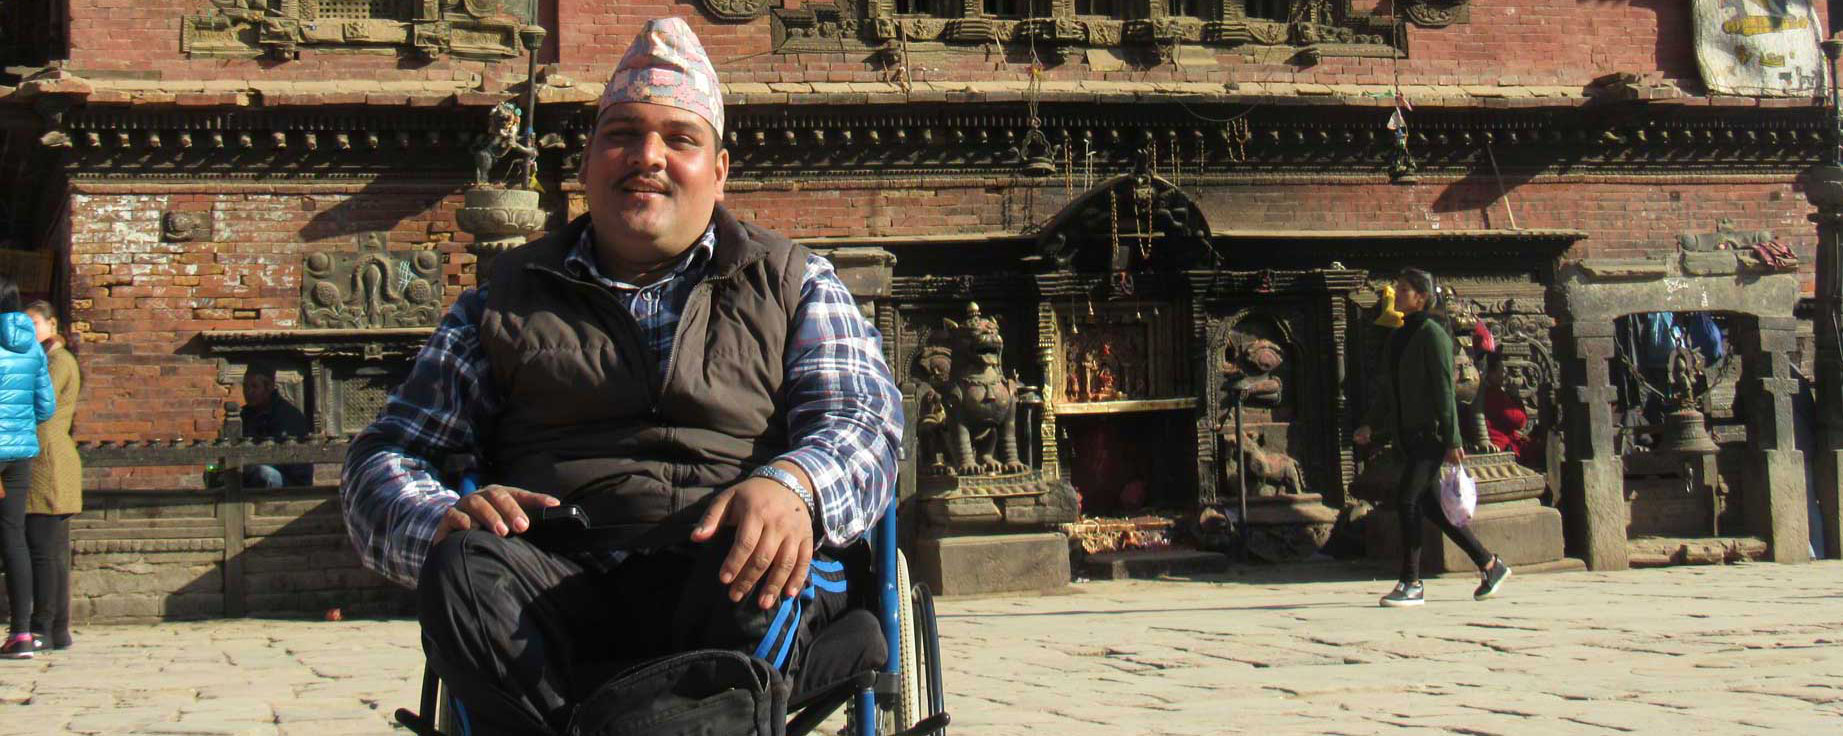 A man in a wheelchair infront of traditional newari building.